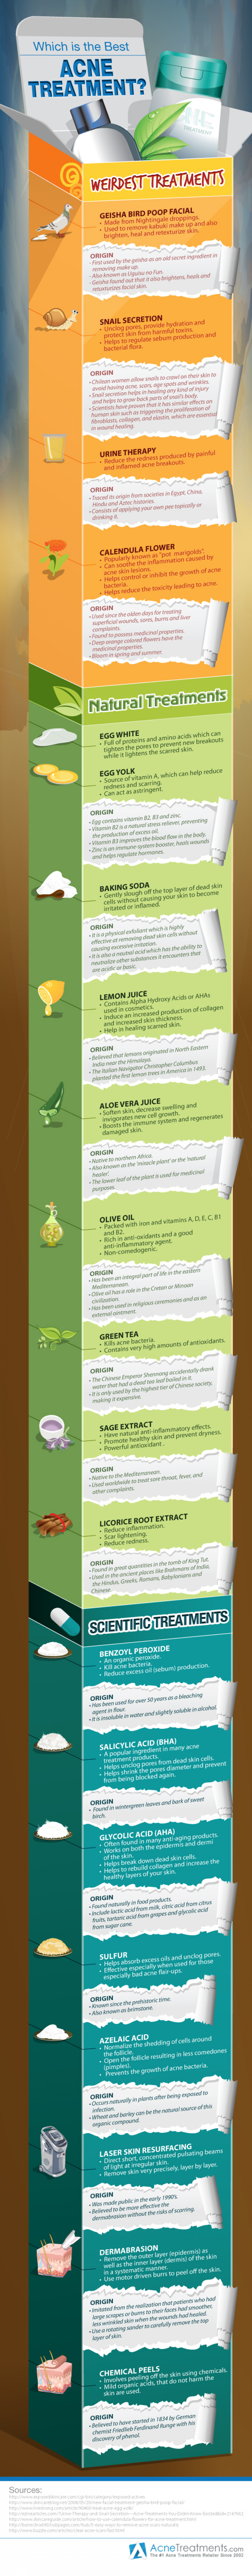 Which is the Best Acne Treatment?  Infographic